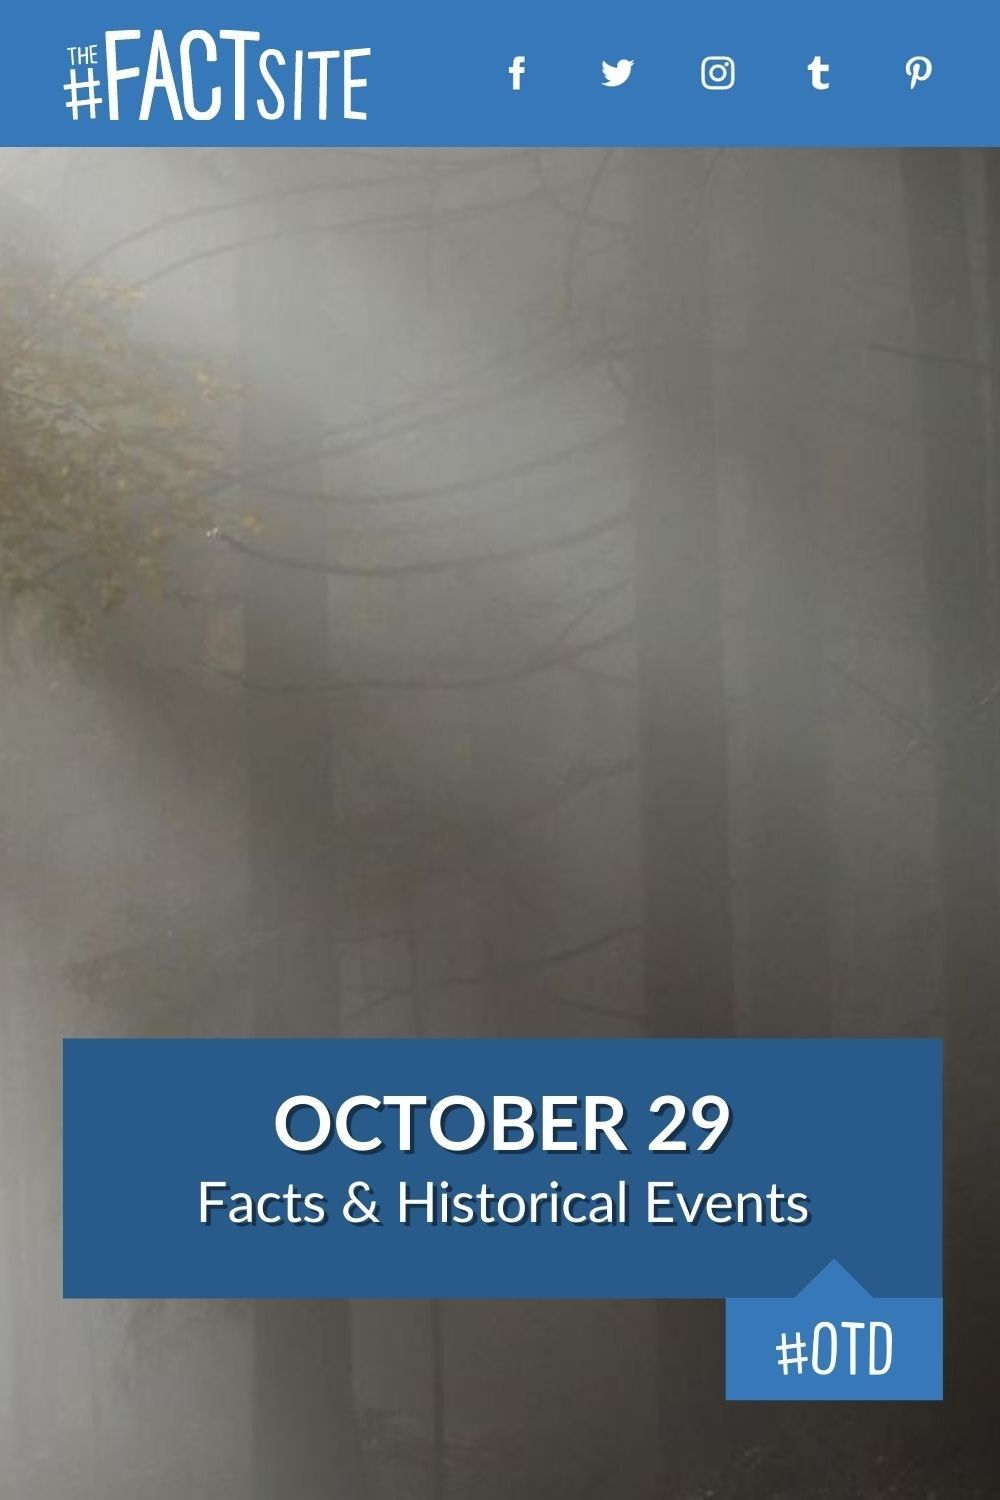 Facts & Historic Events That Happened on October 29